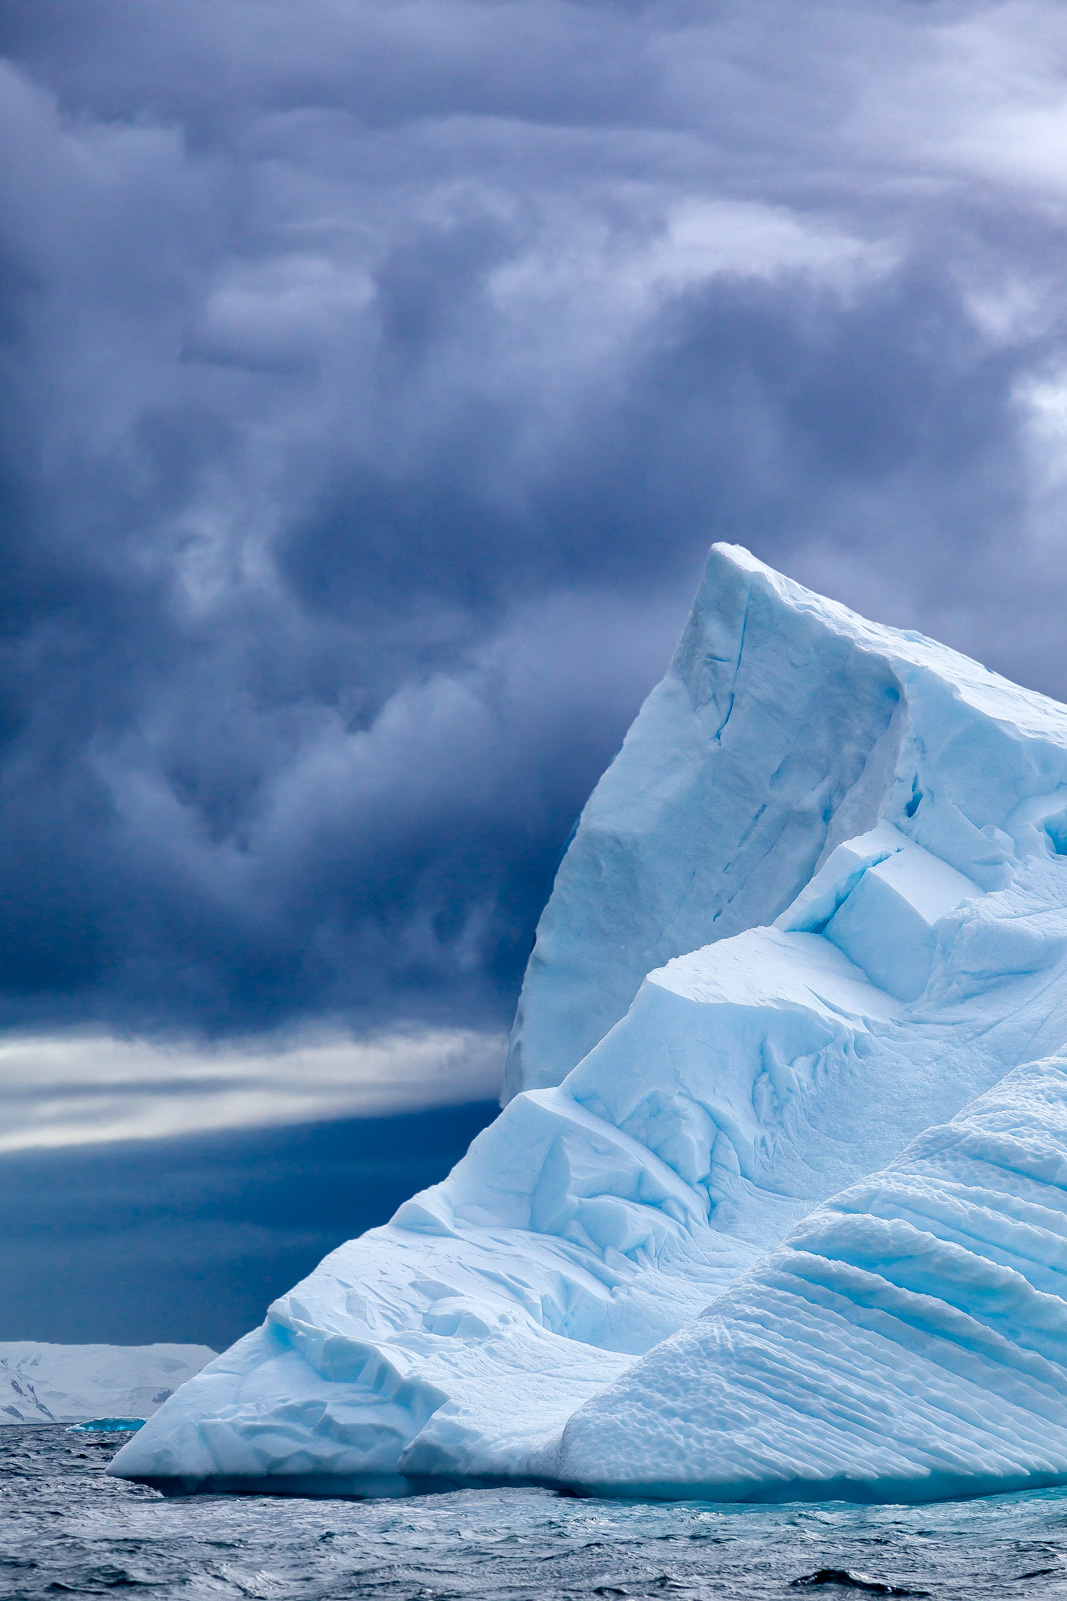 A Limited Edition, Fine Art photograph in Antarctica of an angular iceberg rising into the dark storm clouds near Cuverville...